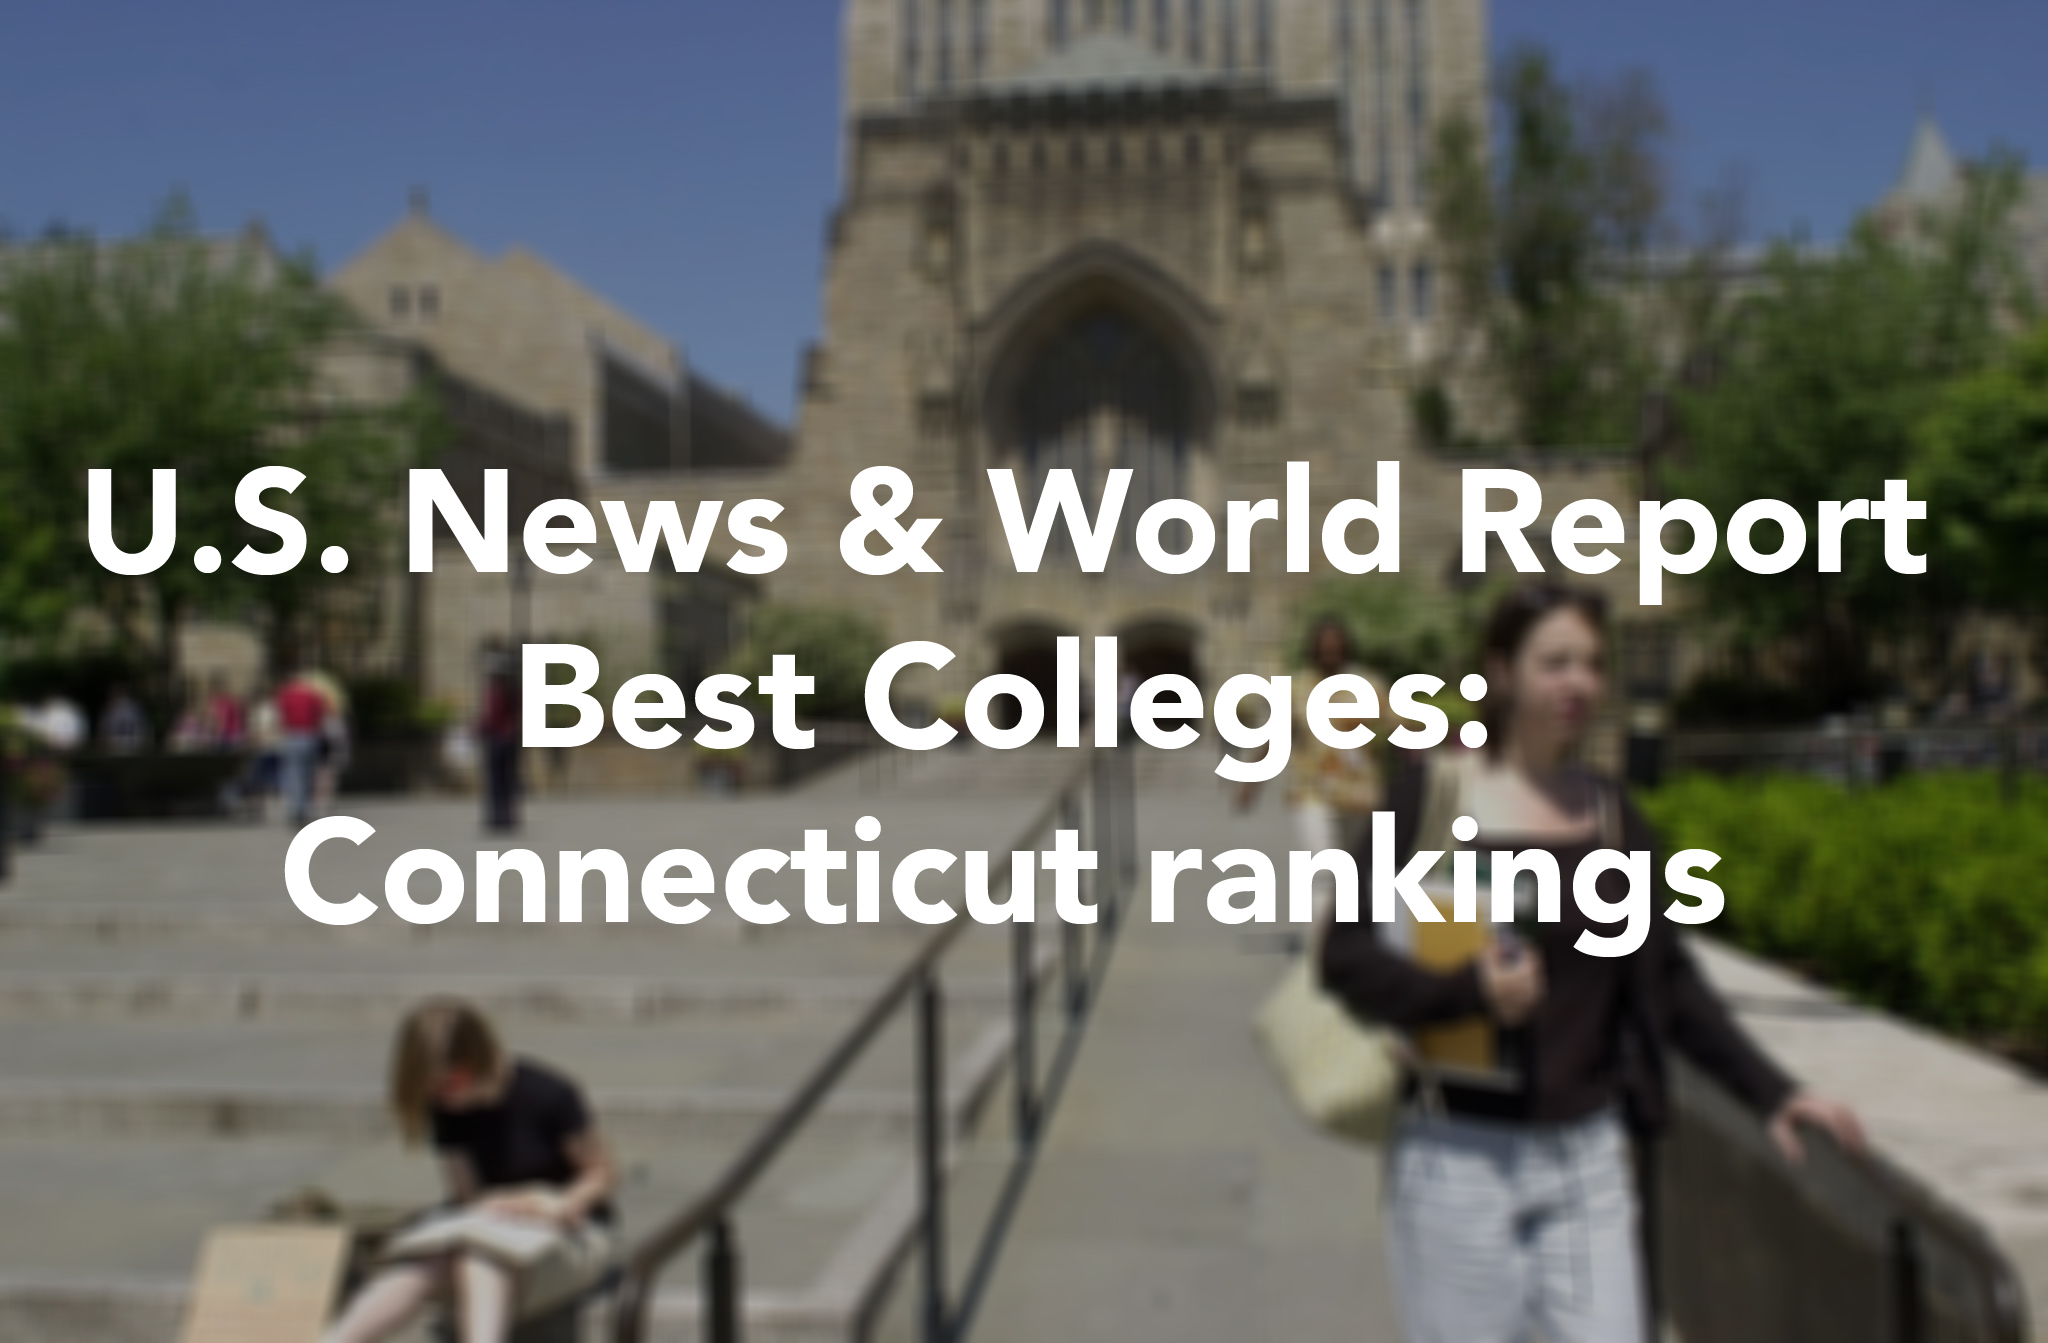 Uconn state colleges get top rankings in us news world reports connecticut post